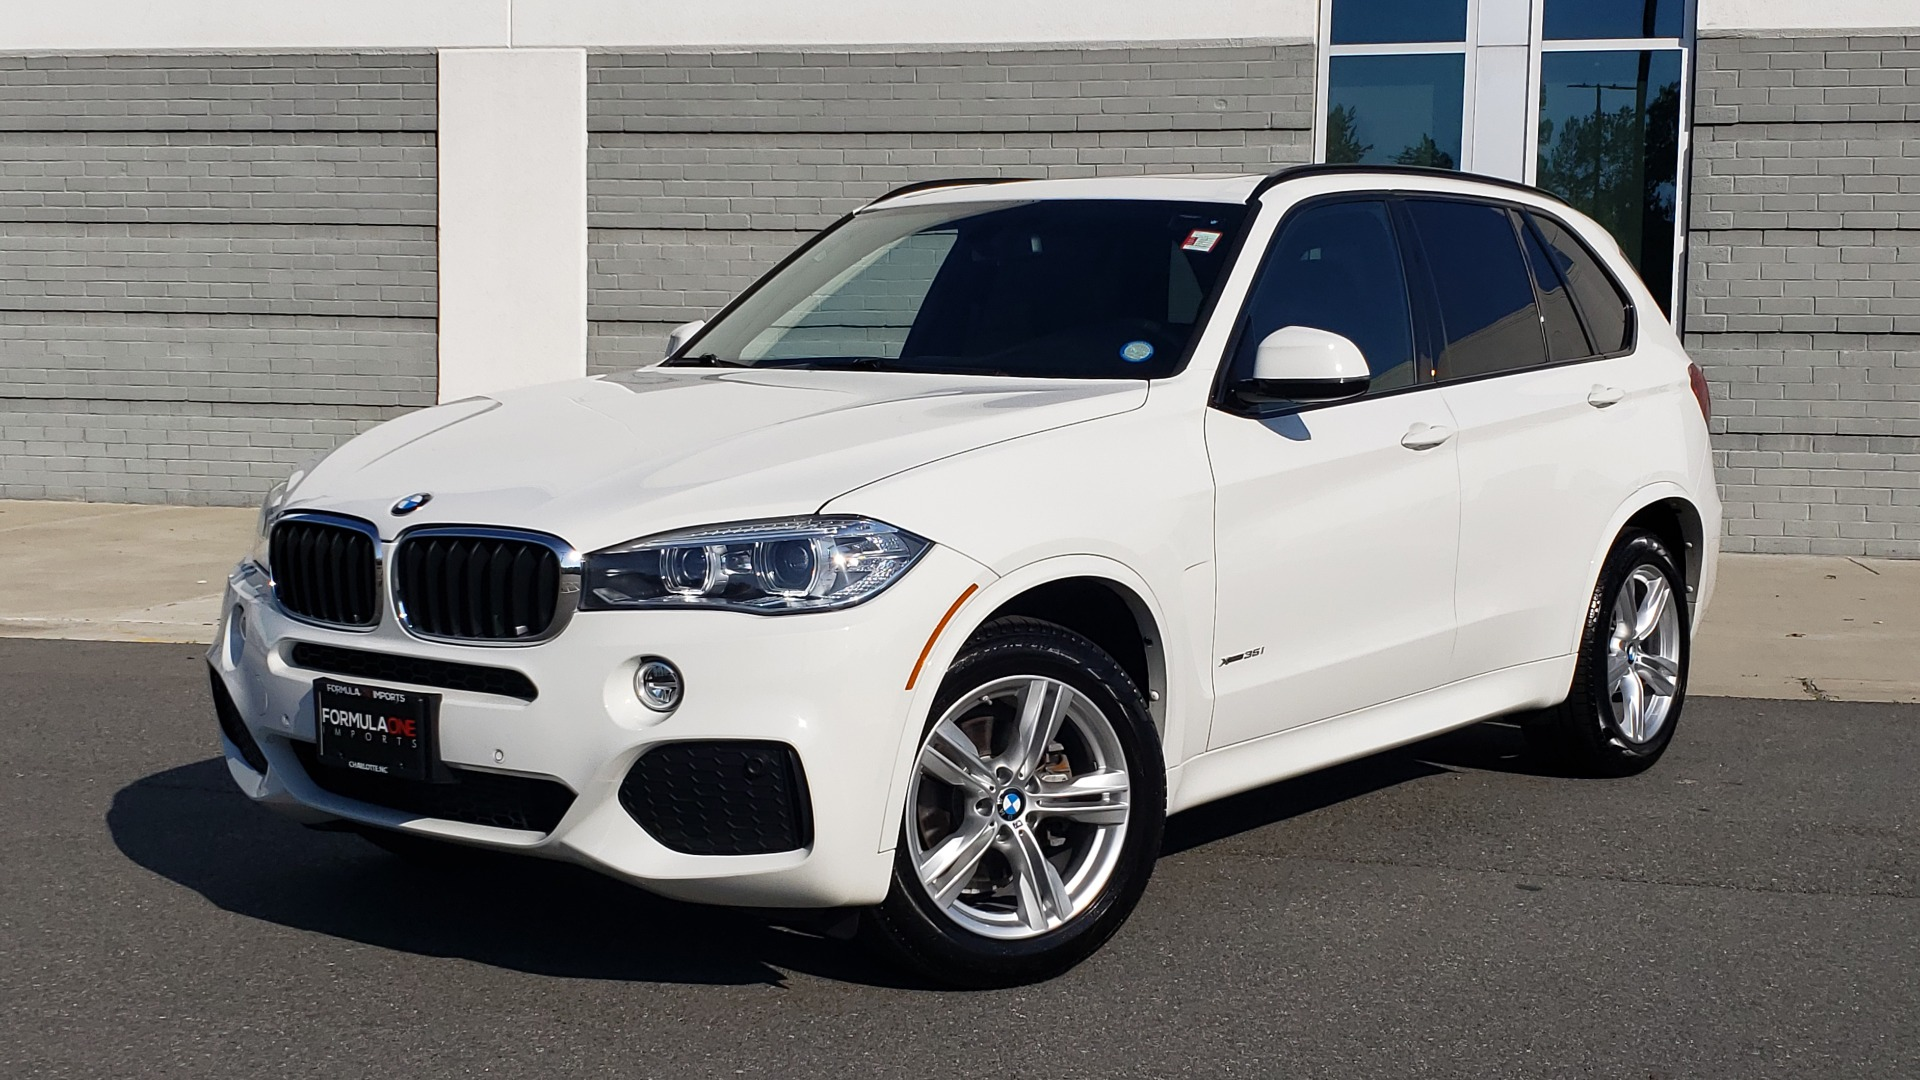 Used 2018 BMW X5 XDRIVE35I / M-SPORT / NAV / SUNROOF / H/K SND / REARVIEW for sale $39,995 at Formula Imports in Charlotte NC 28227 1